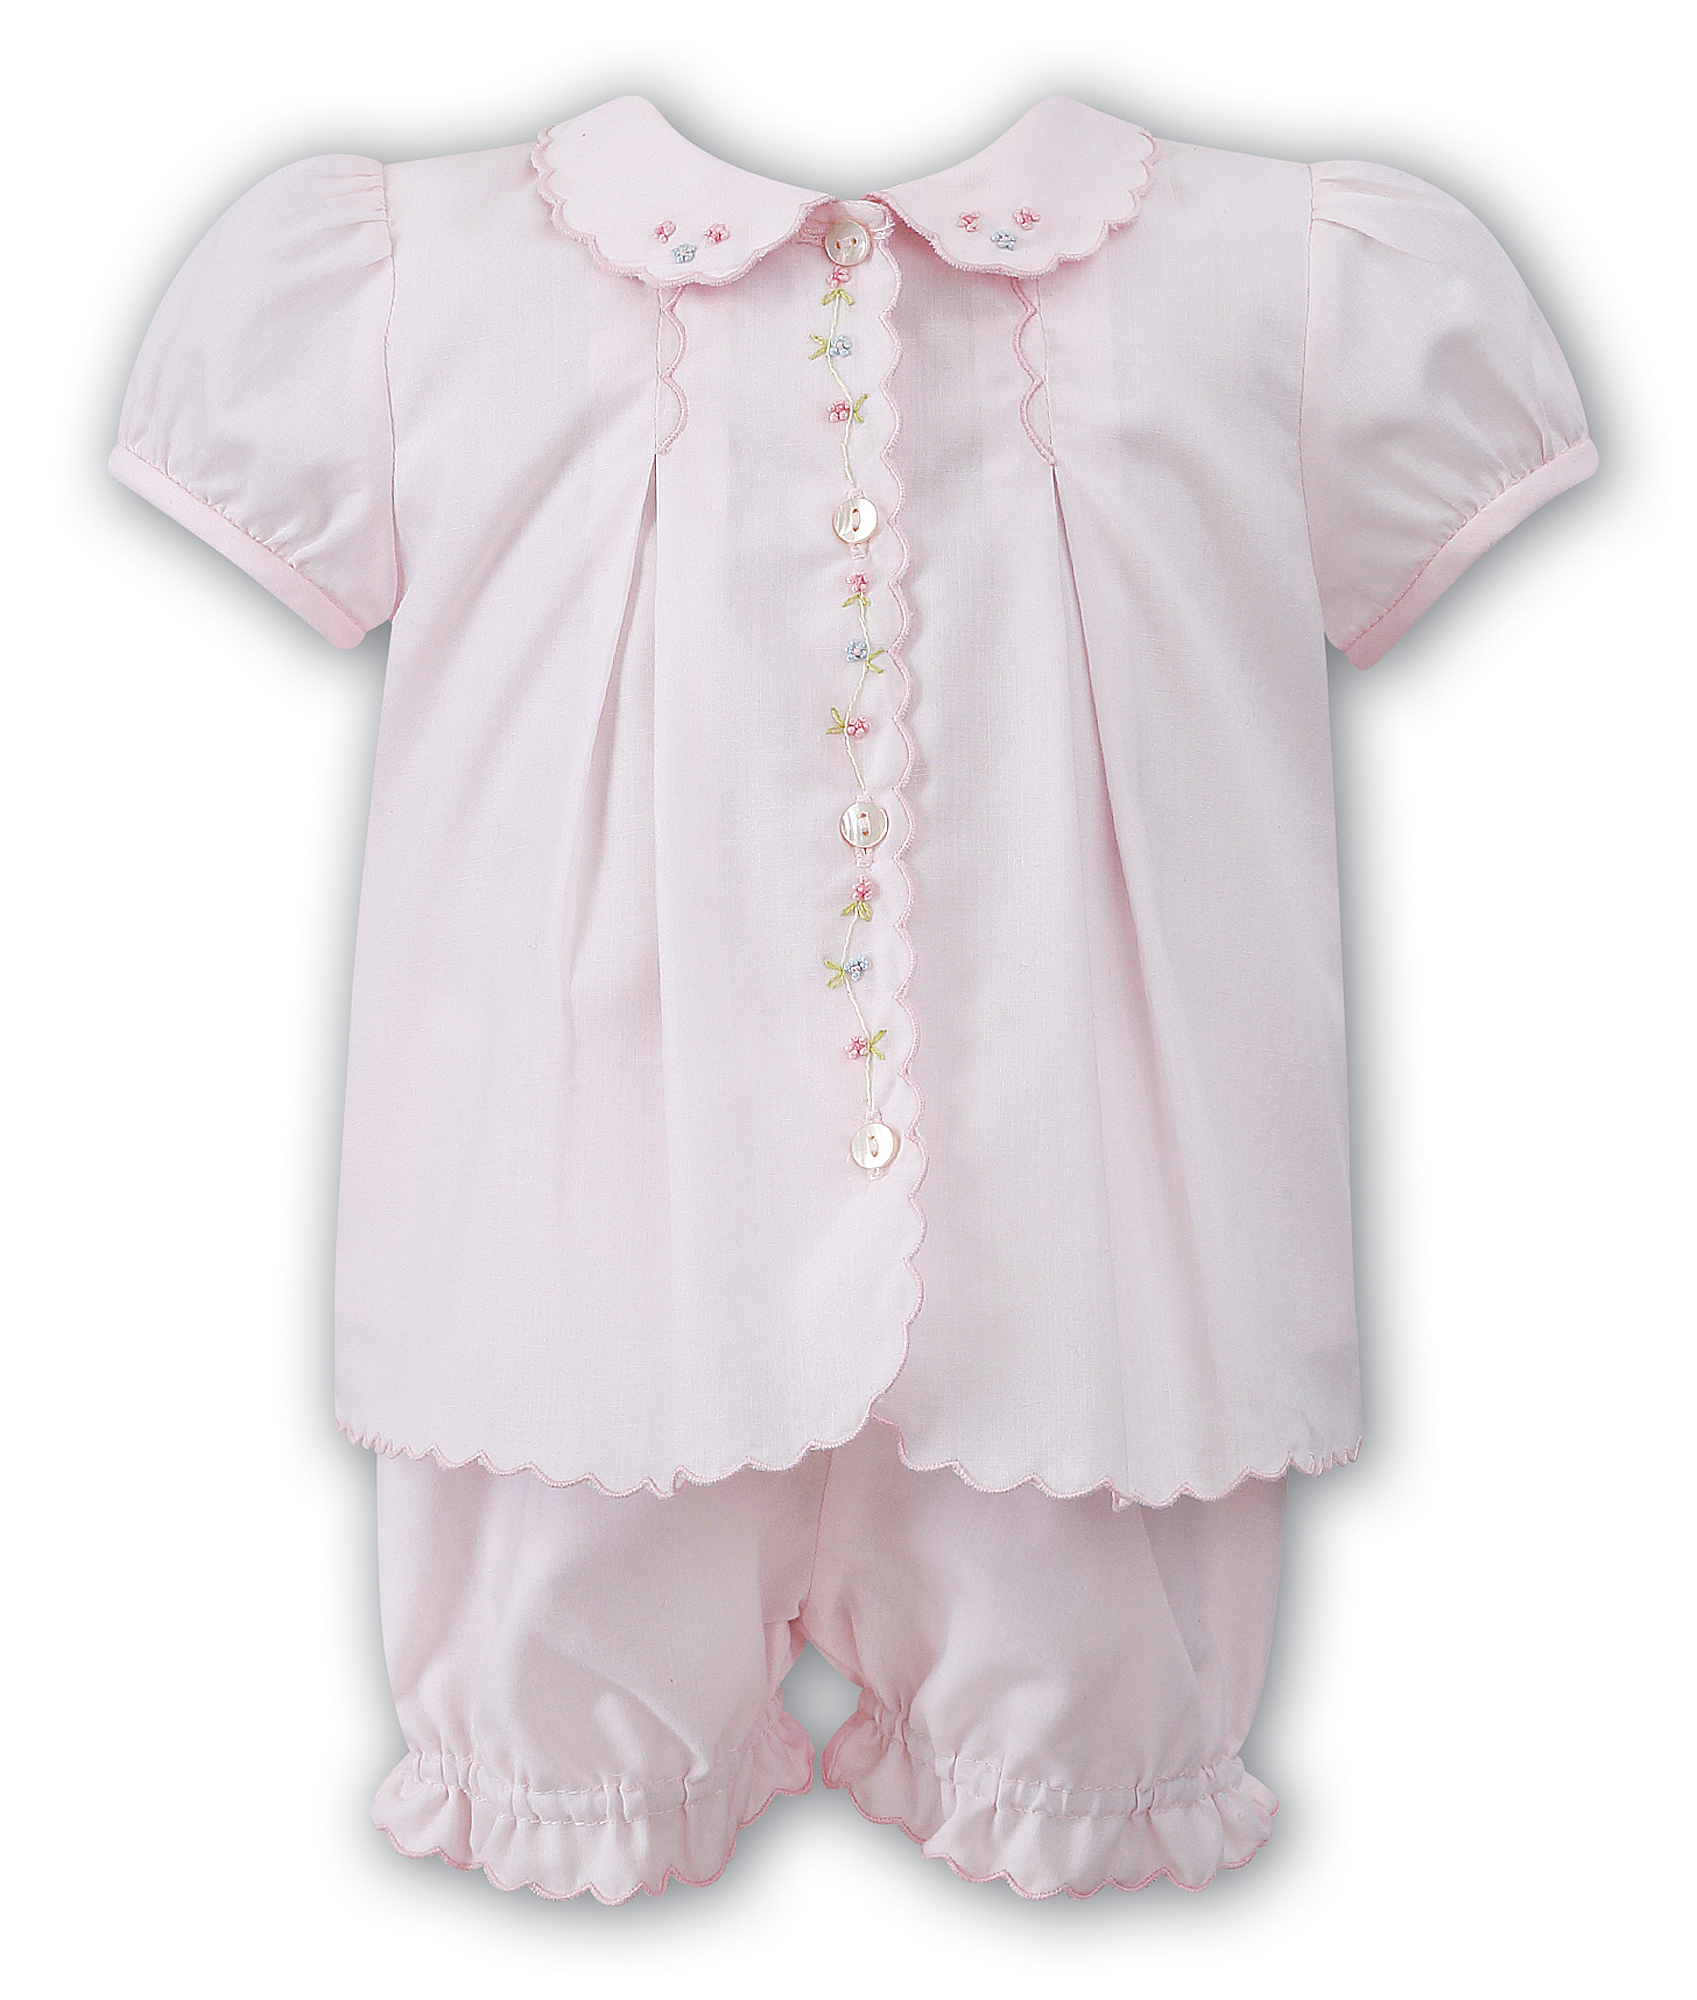 Pink Summer Set Baby Boutique Clothing